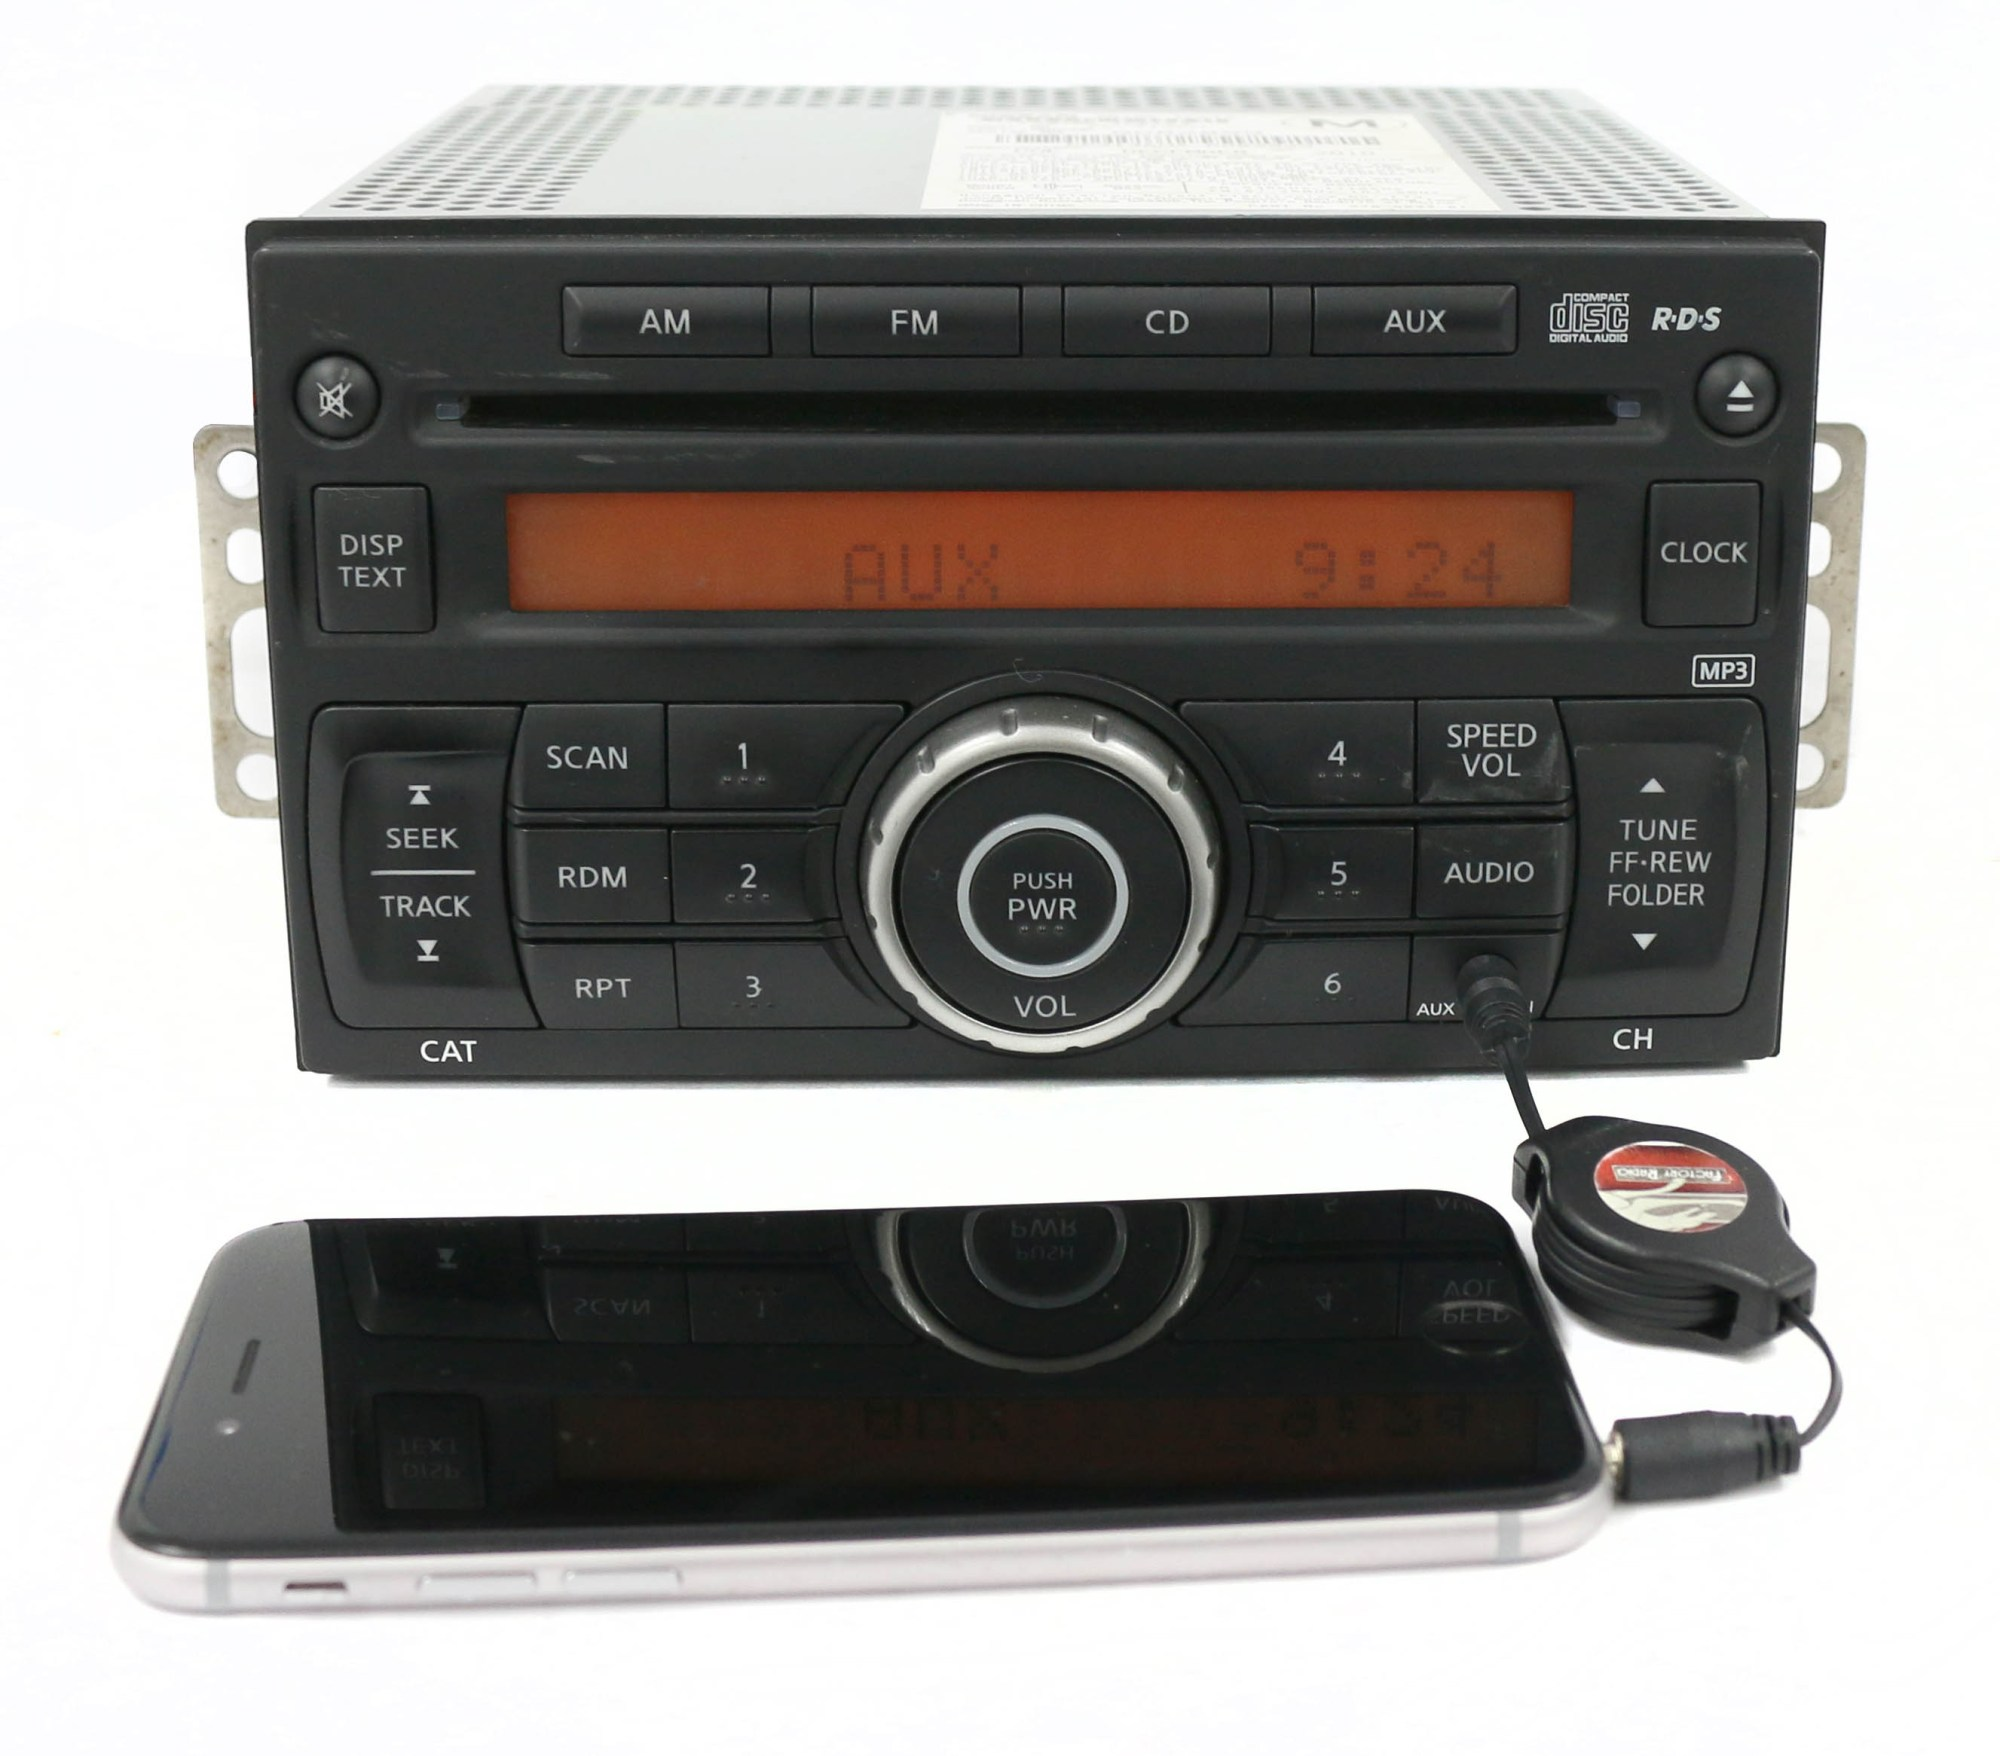 hight resolution of 2012 2017 nissan nv 1500 2500 3500 am fm radio single disc cd part 28185 1pa1a refurbished walmart com